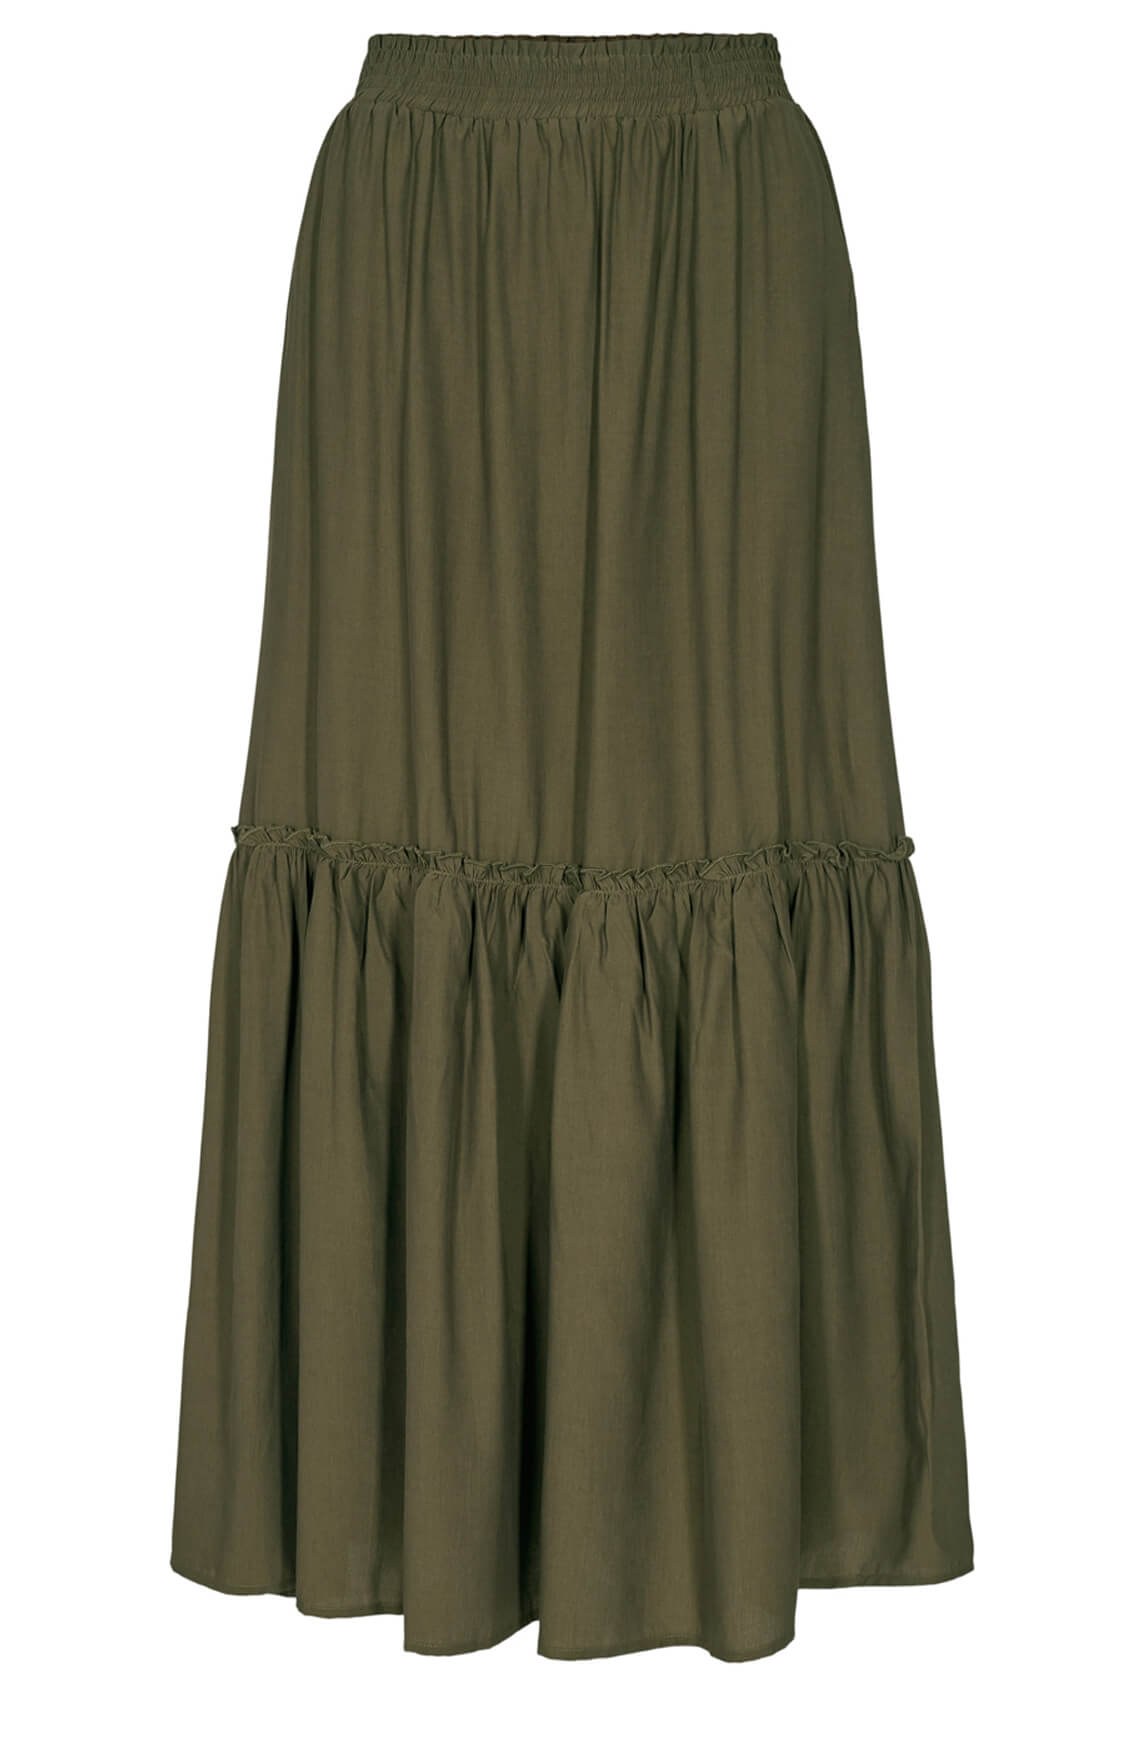 Co Couture Dames New Gipsy lange rok groen